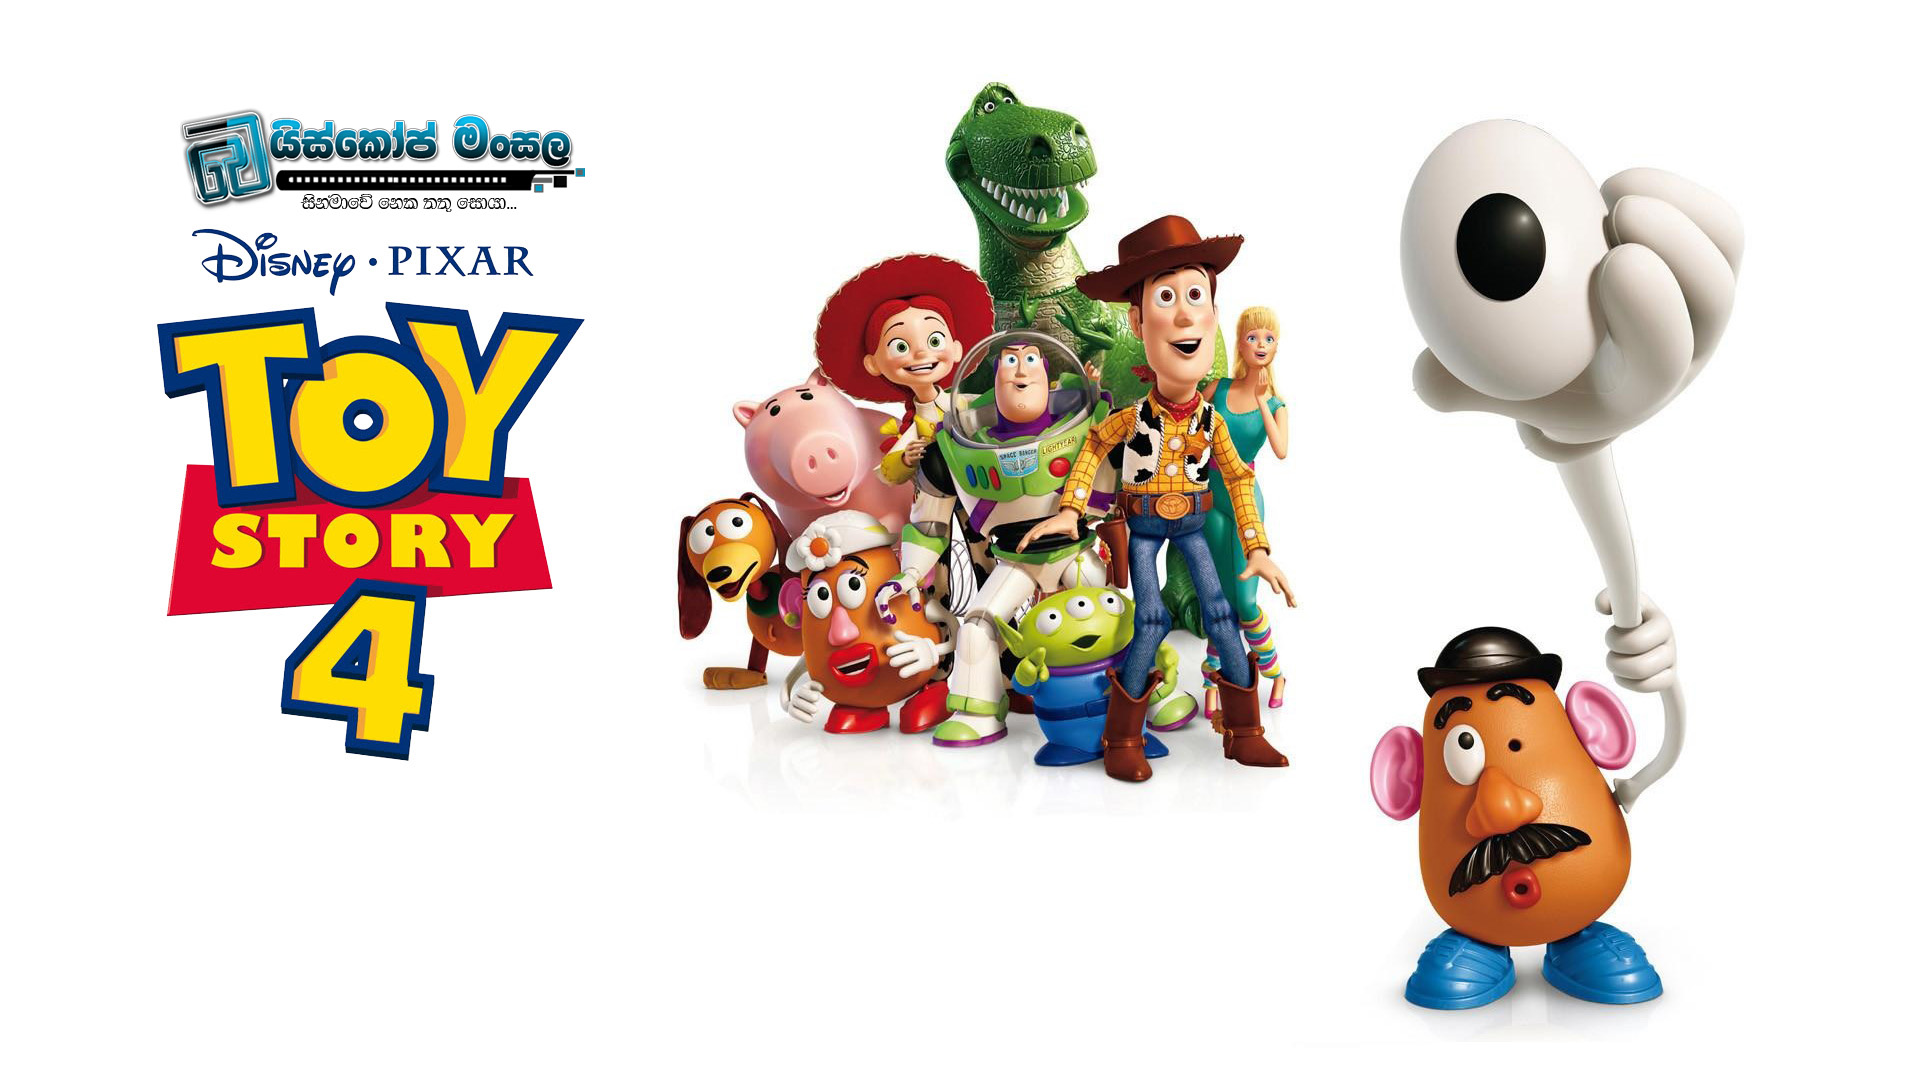 Visit the official Toy Story website to play games find activities browse movies watch video browse photo galleries buy merchandise and more!